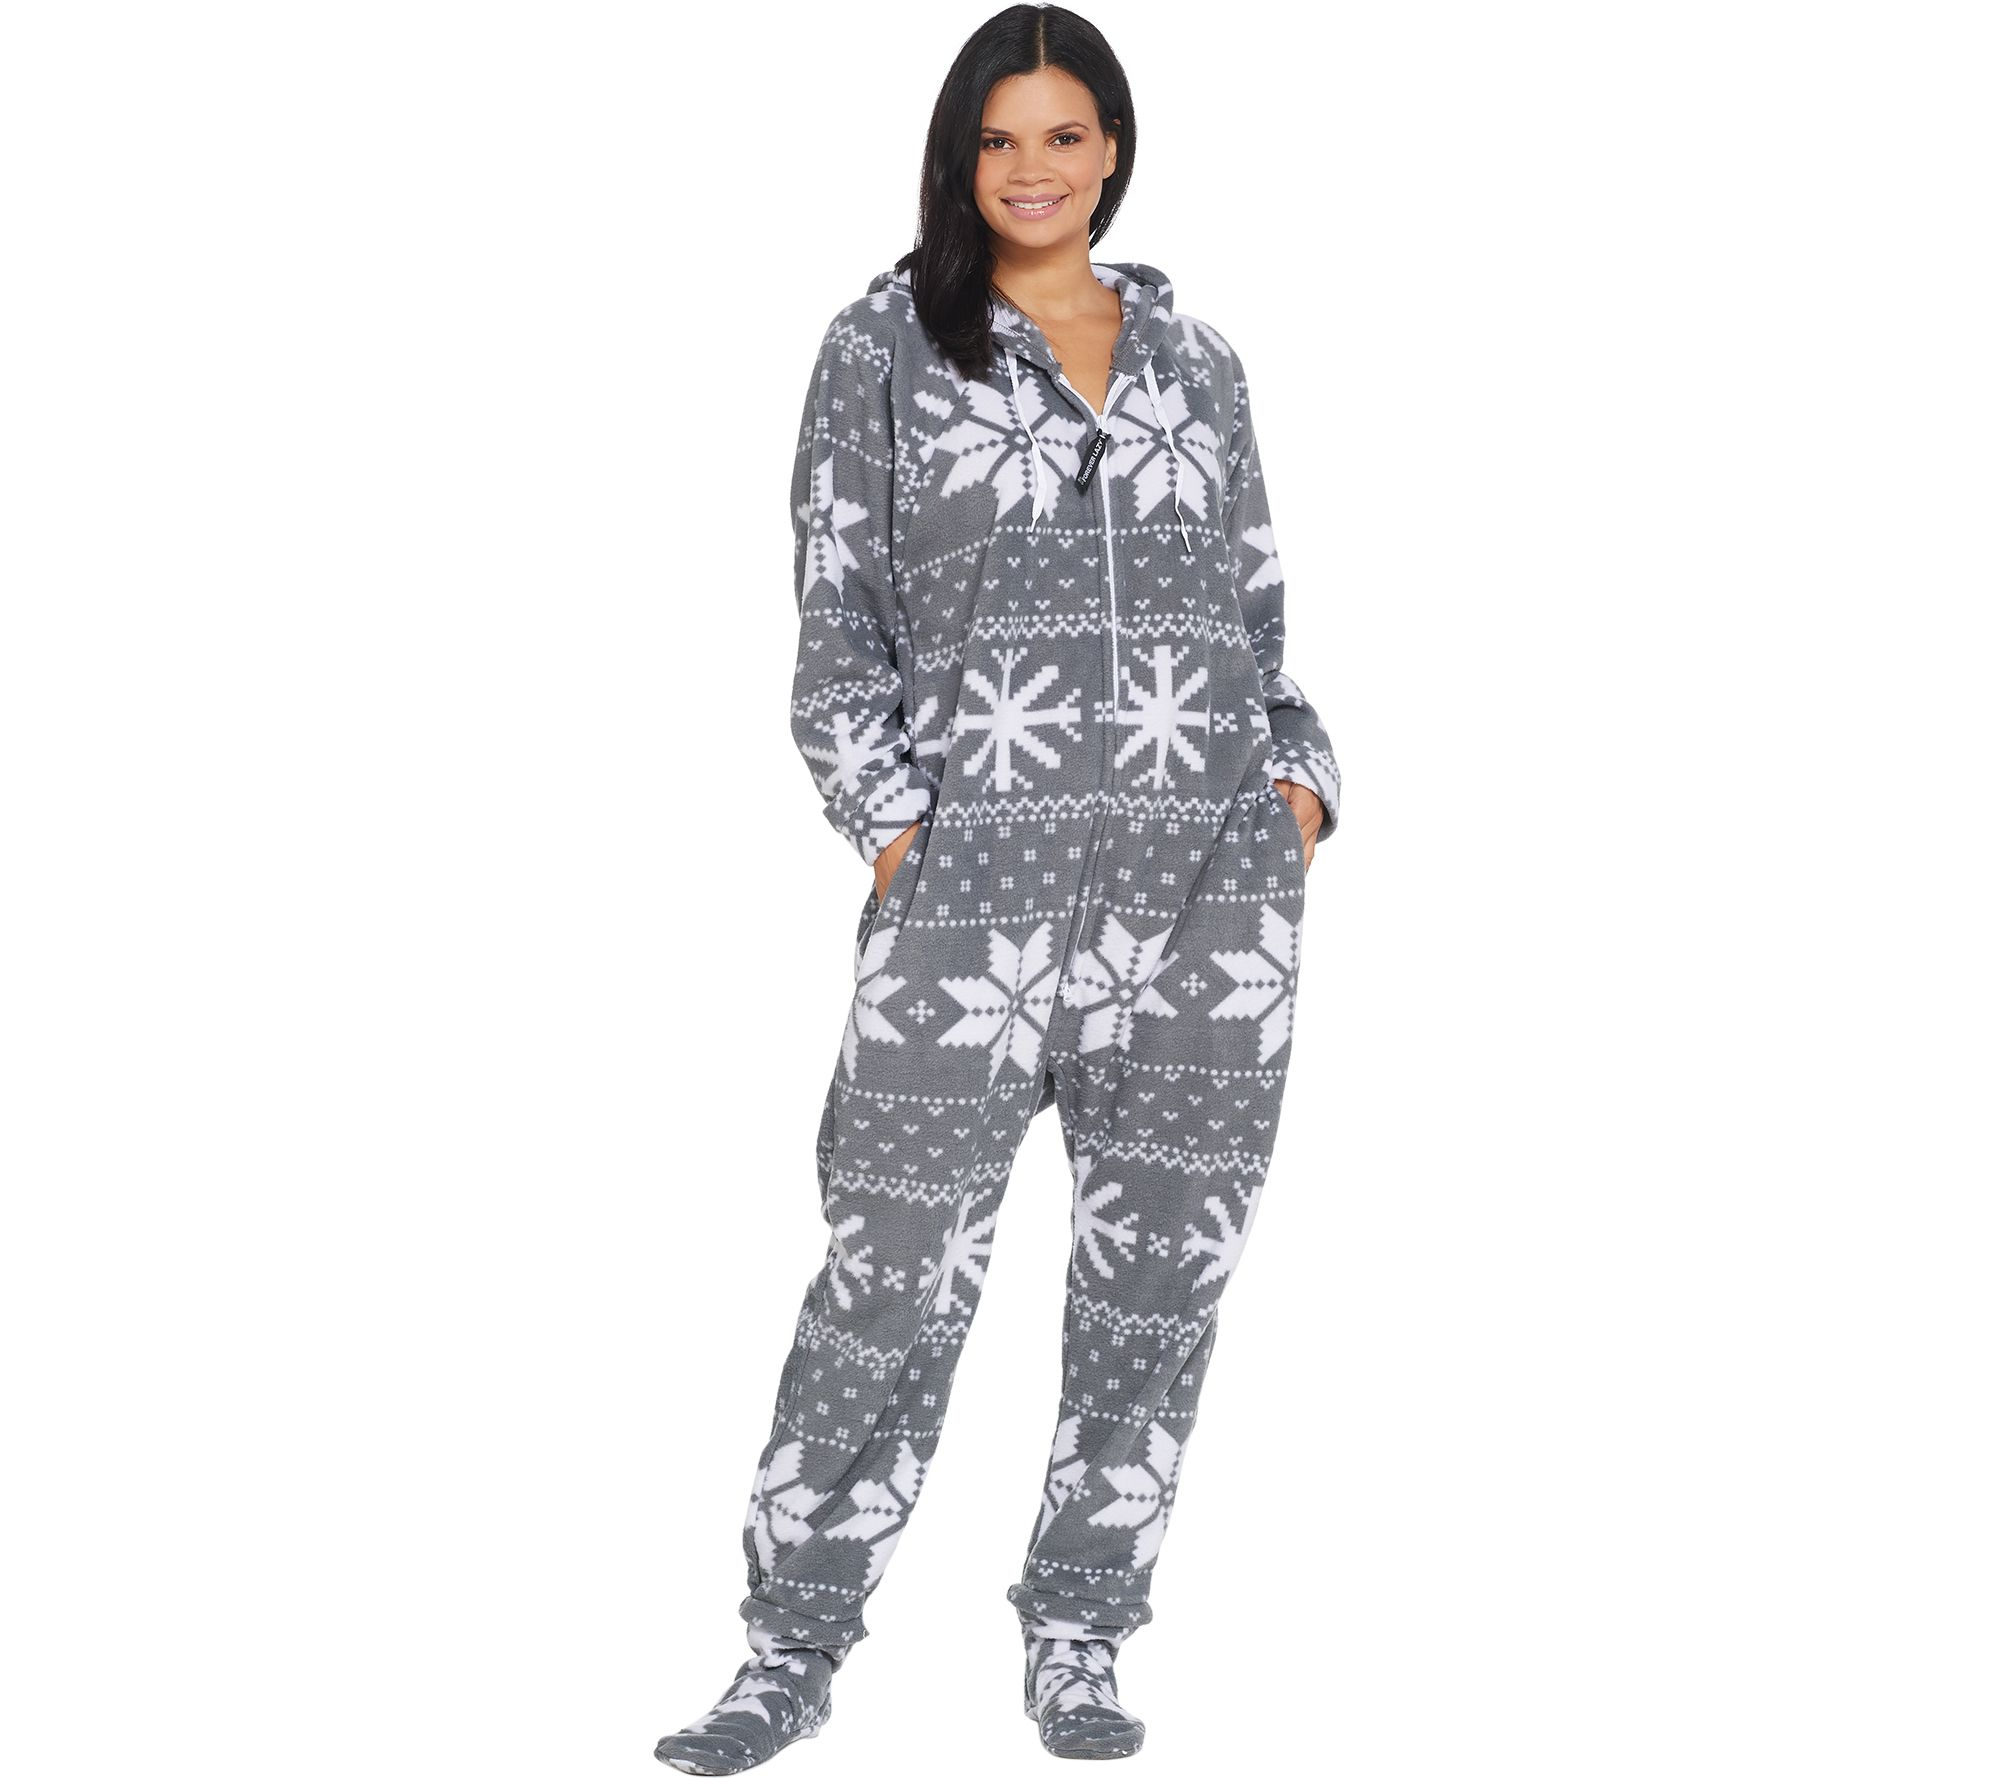 d7ed4616b050 Forever Lazy Fleece Adult Onesie with Pocket